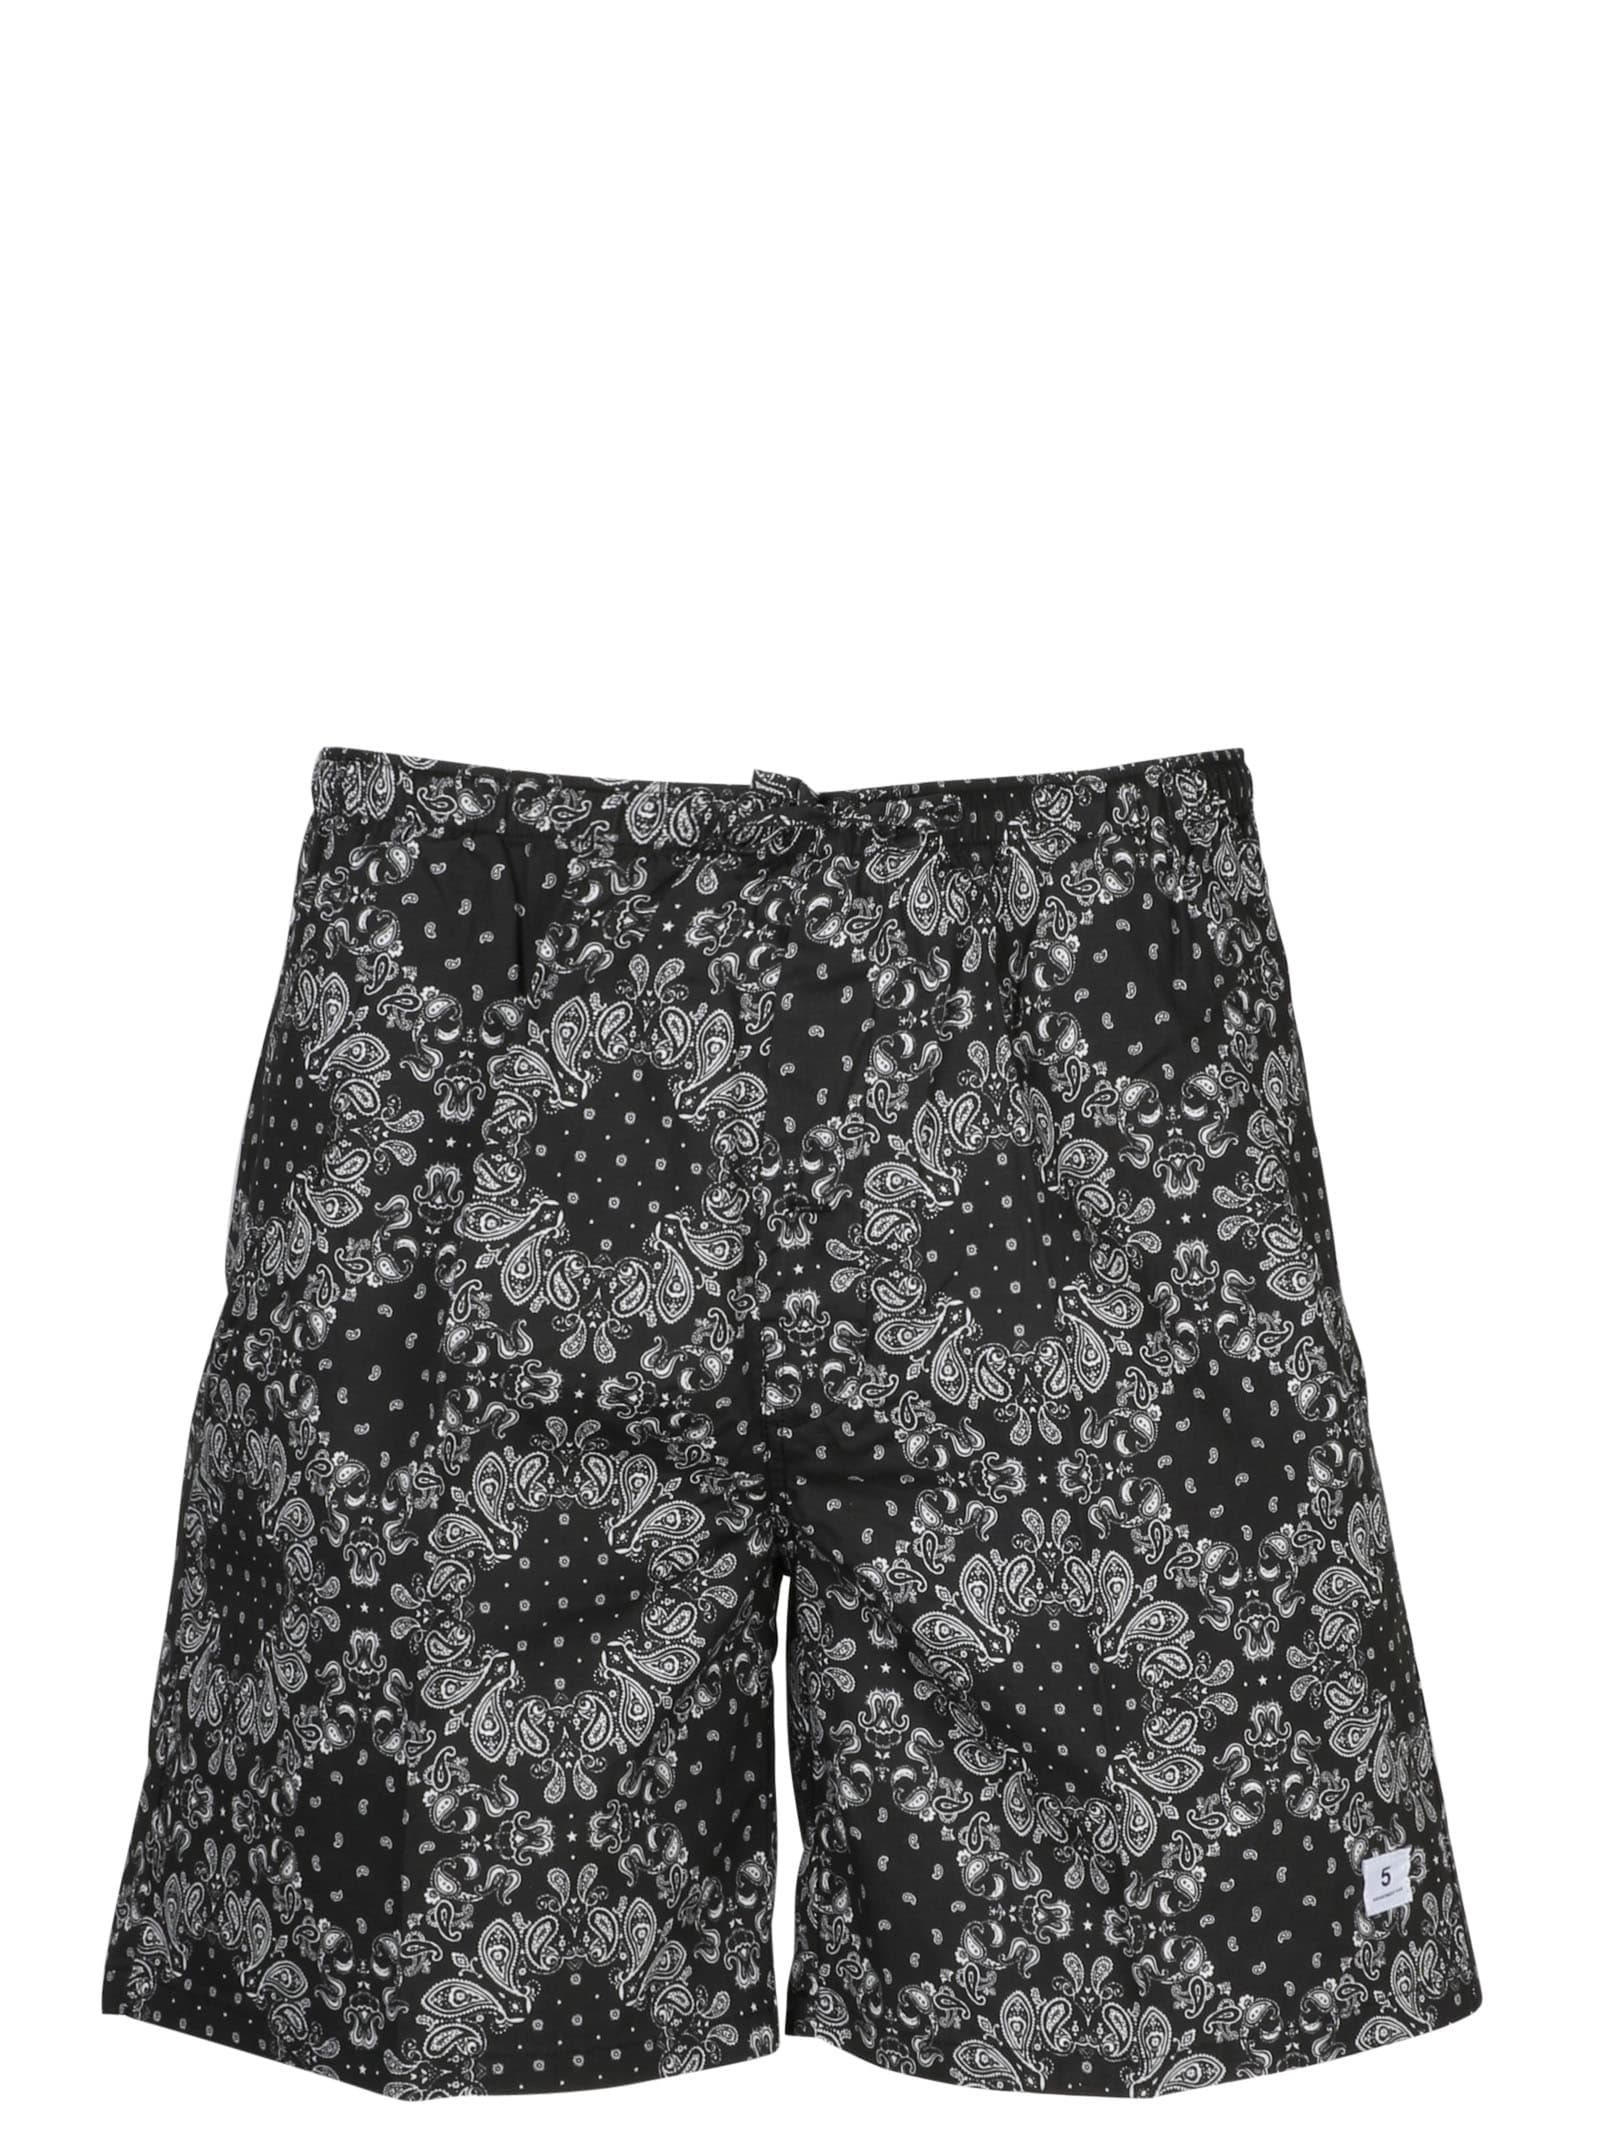 Department 5 Printed Swimshorts